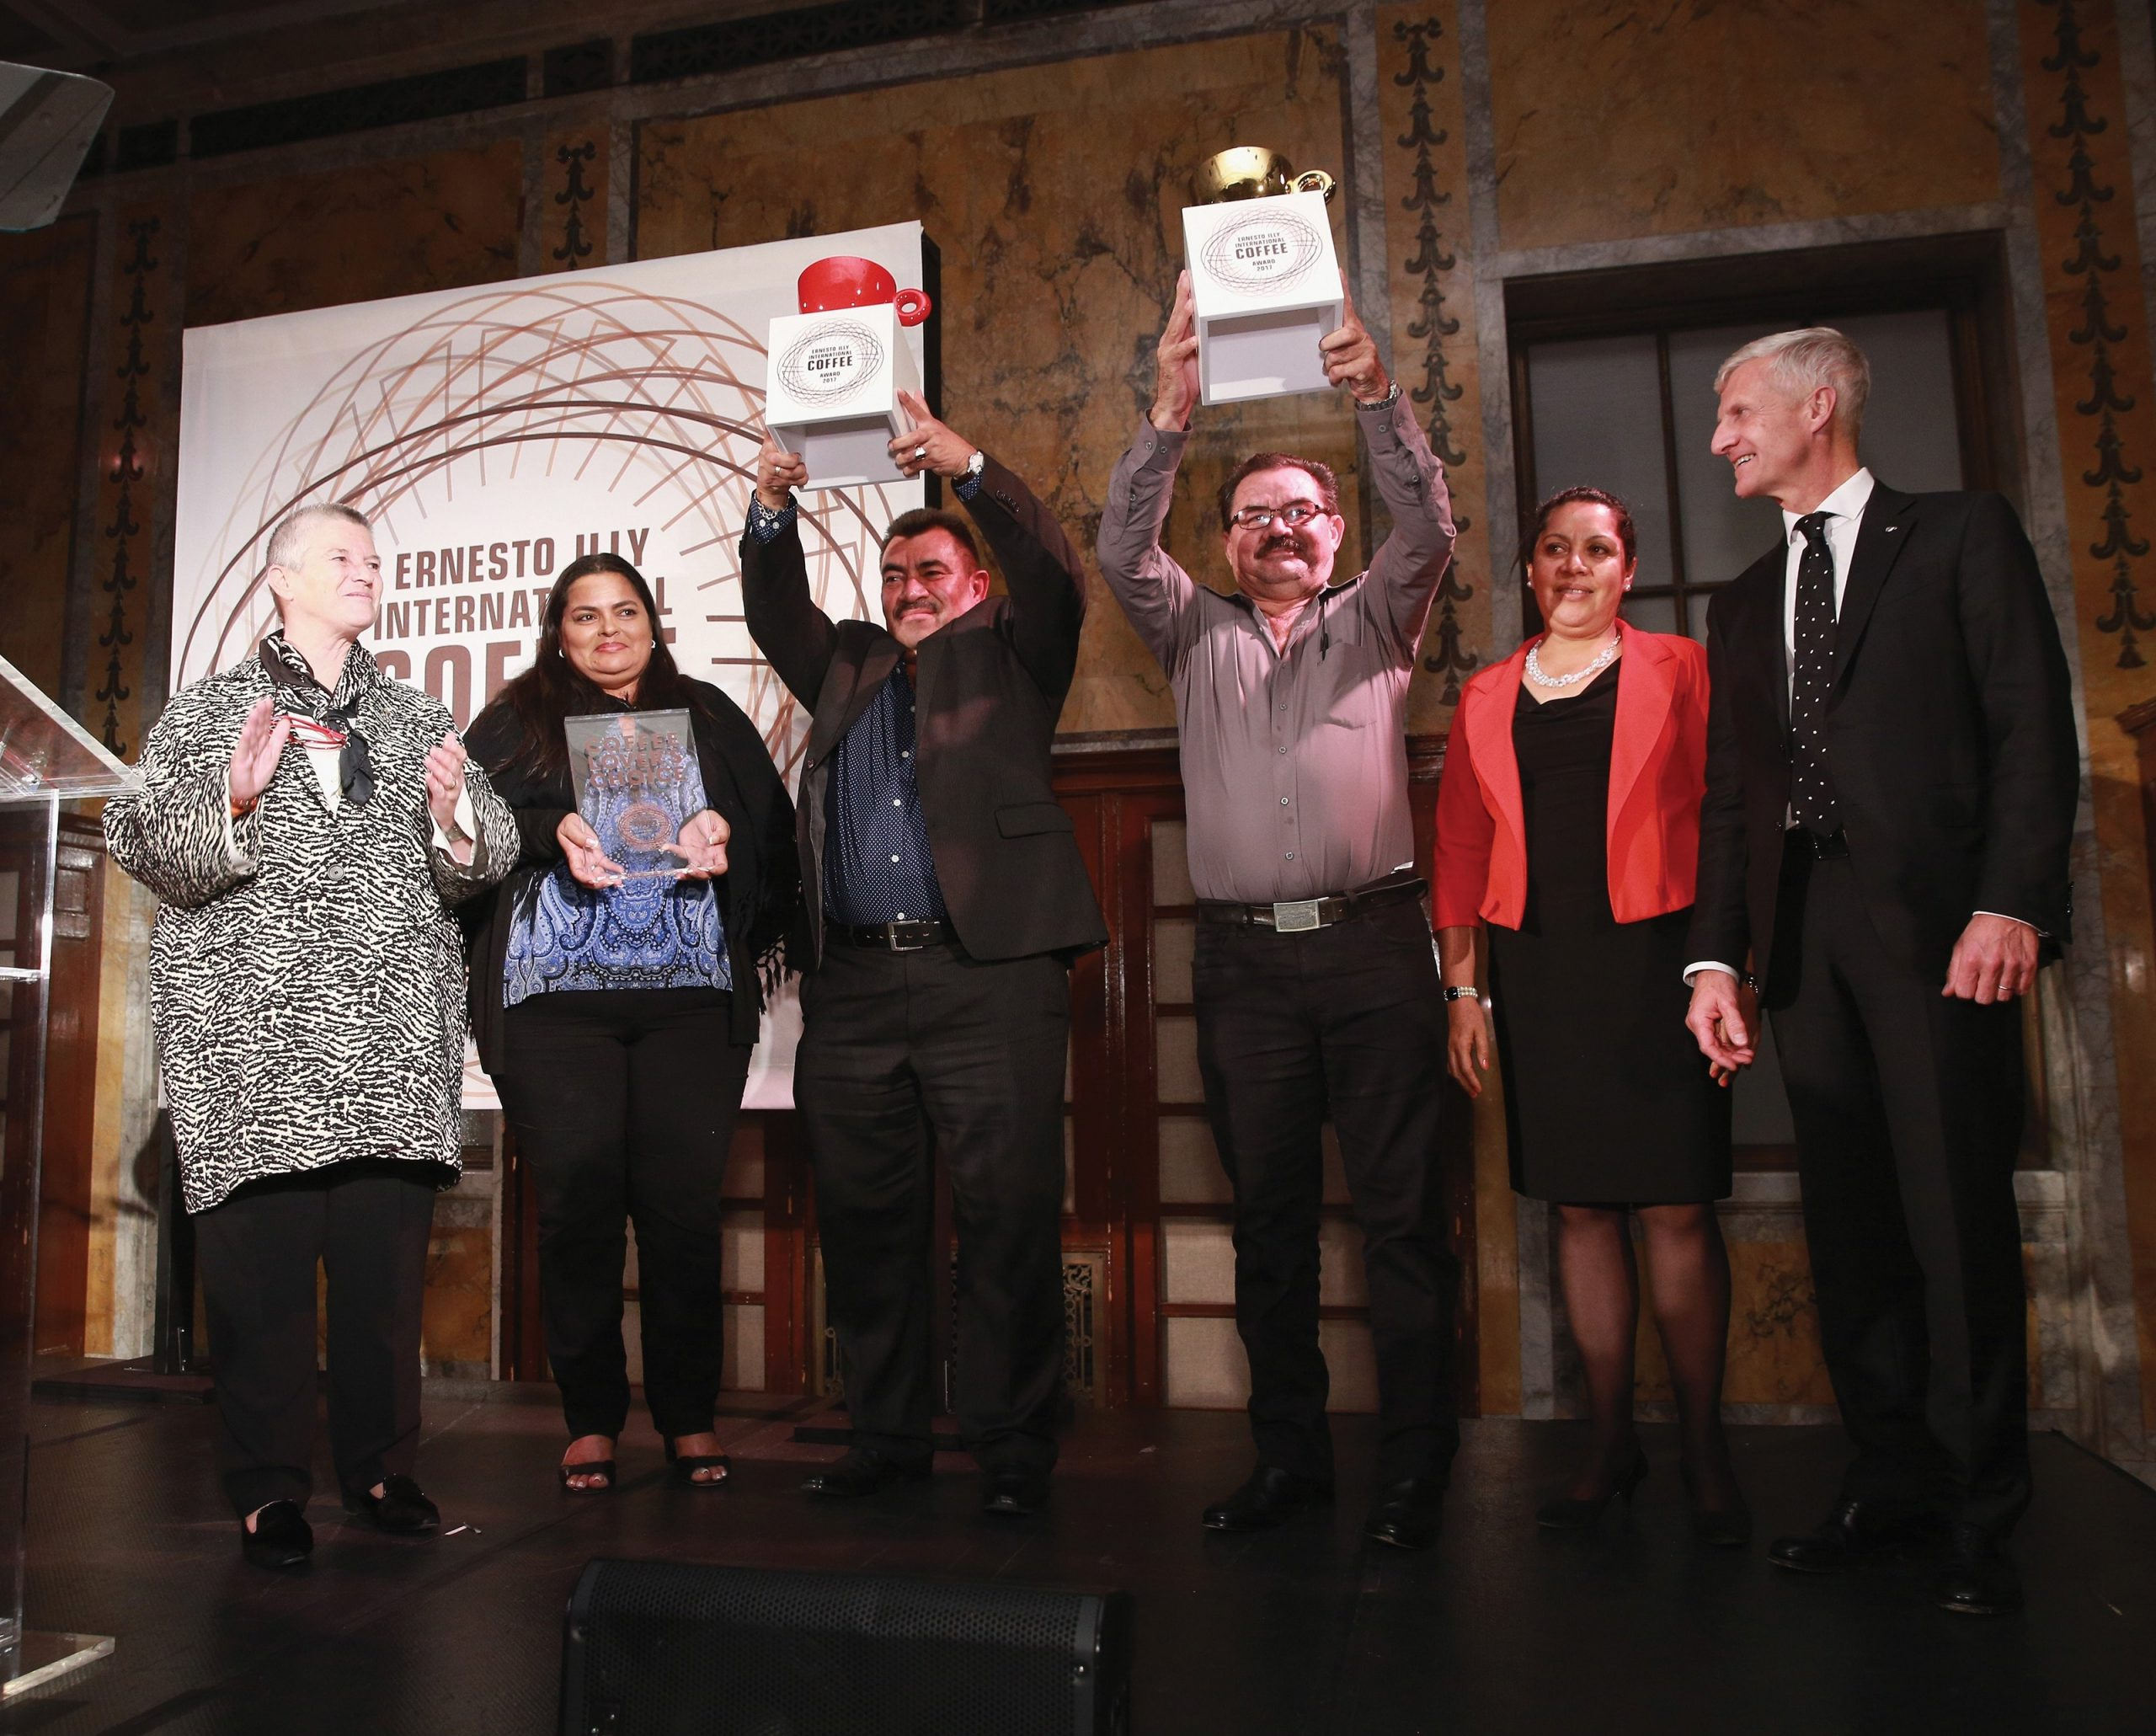 Second Annual Ernesto Illy International Coffee Awards